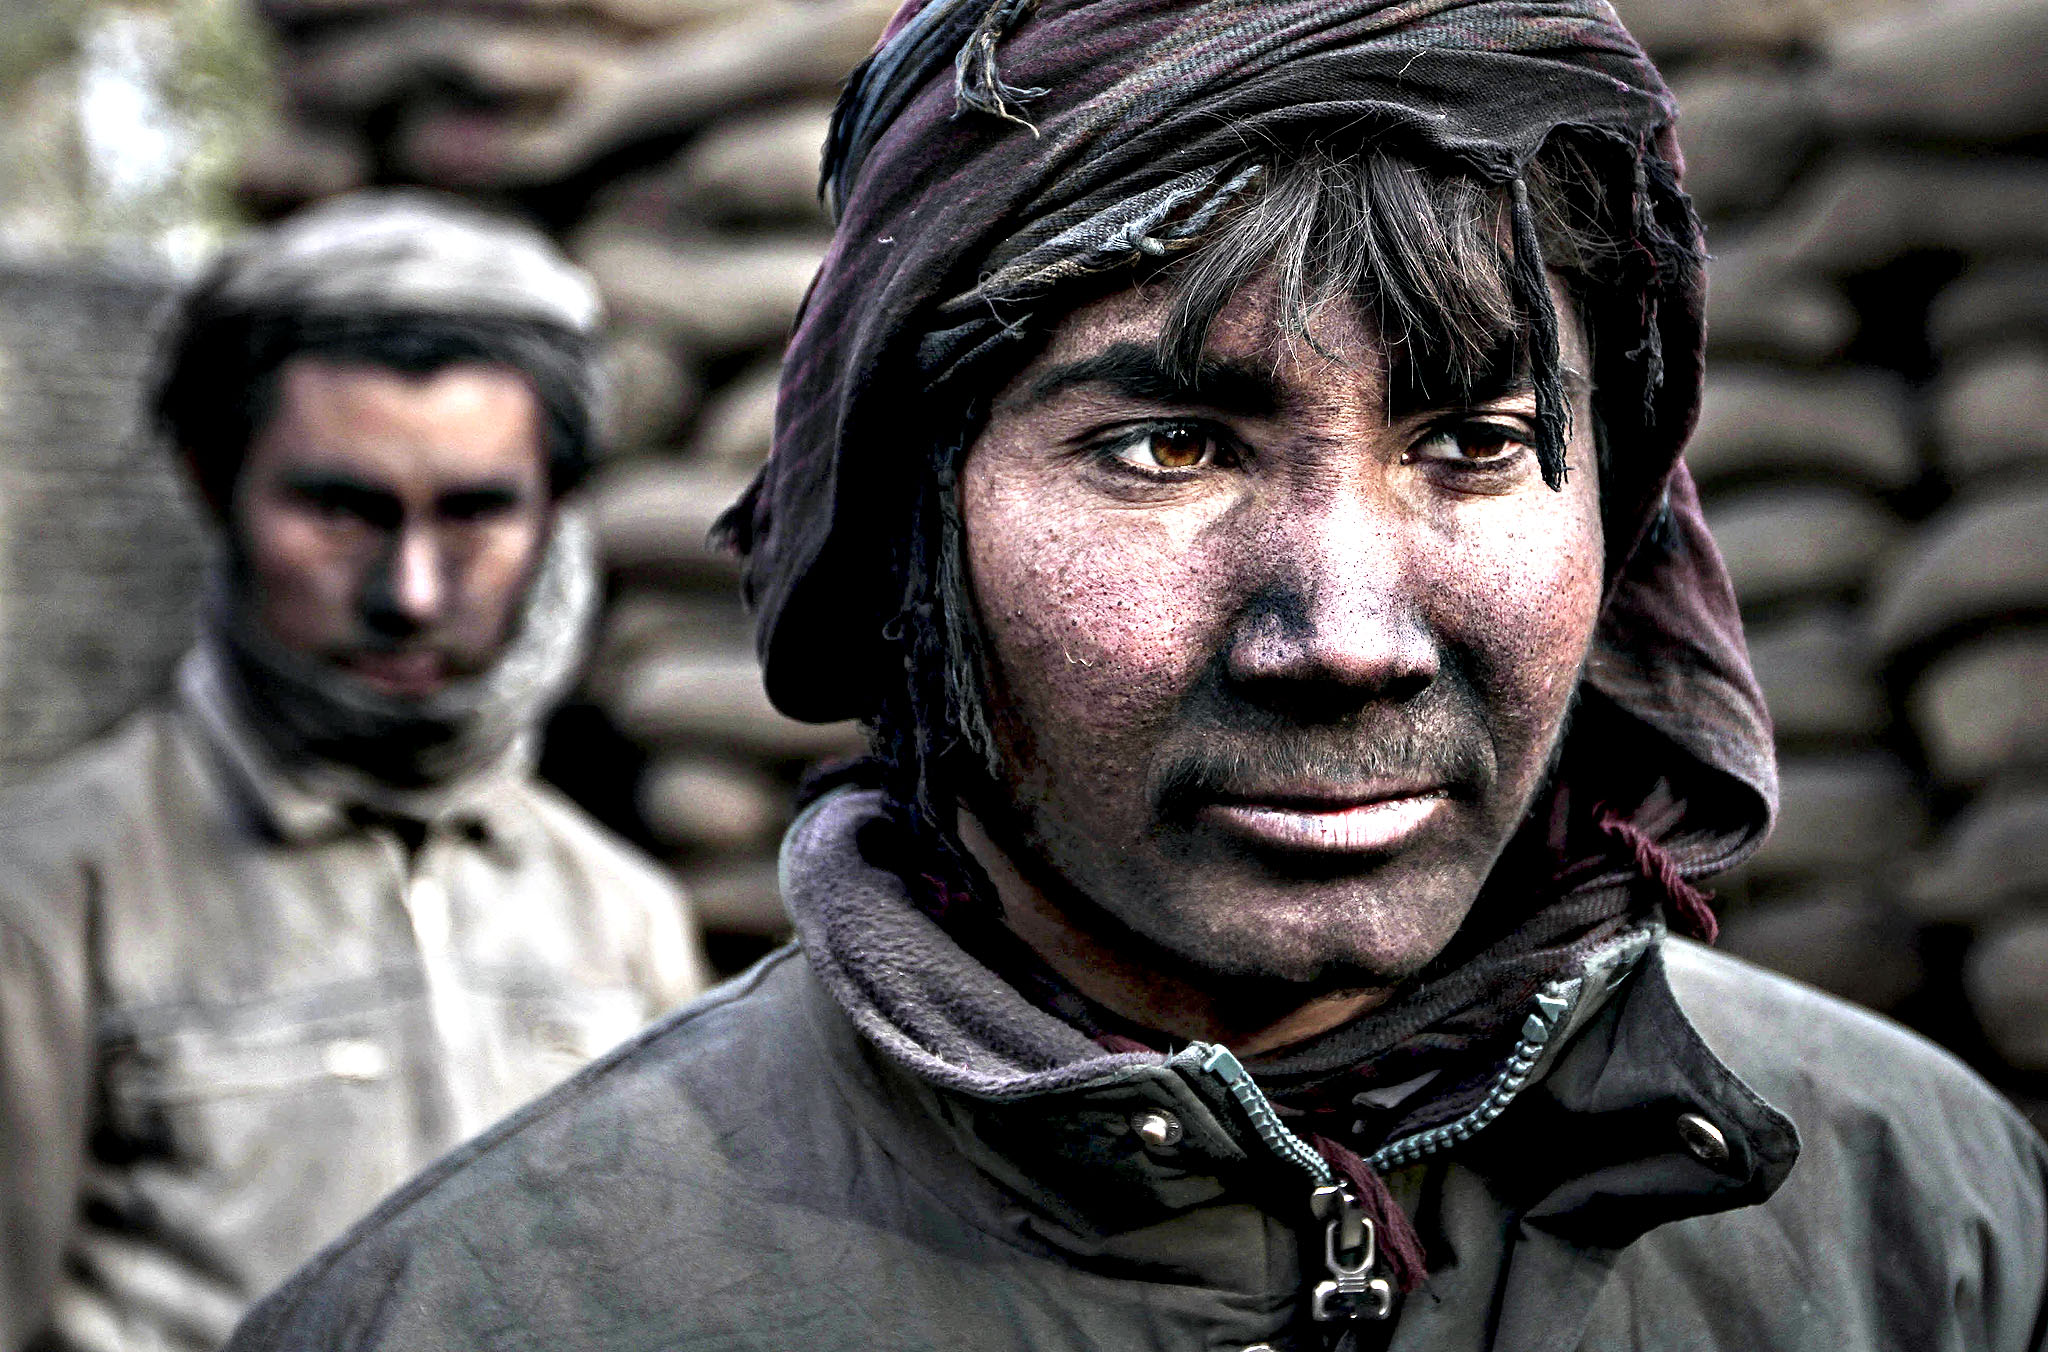 Qudrat, 18, right, poses for a photograph as he works at a charcoal shop on the outskirts of Kabul, Afghanistan, Monday, Nov. 4, 2013. As winter is approaching, wood and charcoal are getting expensive among all other necessities for most Afghans.